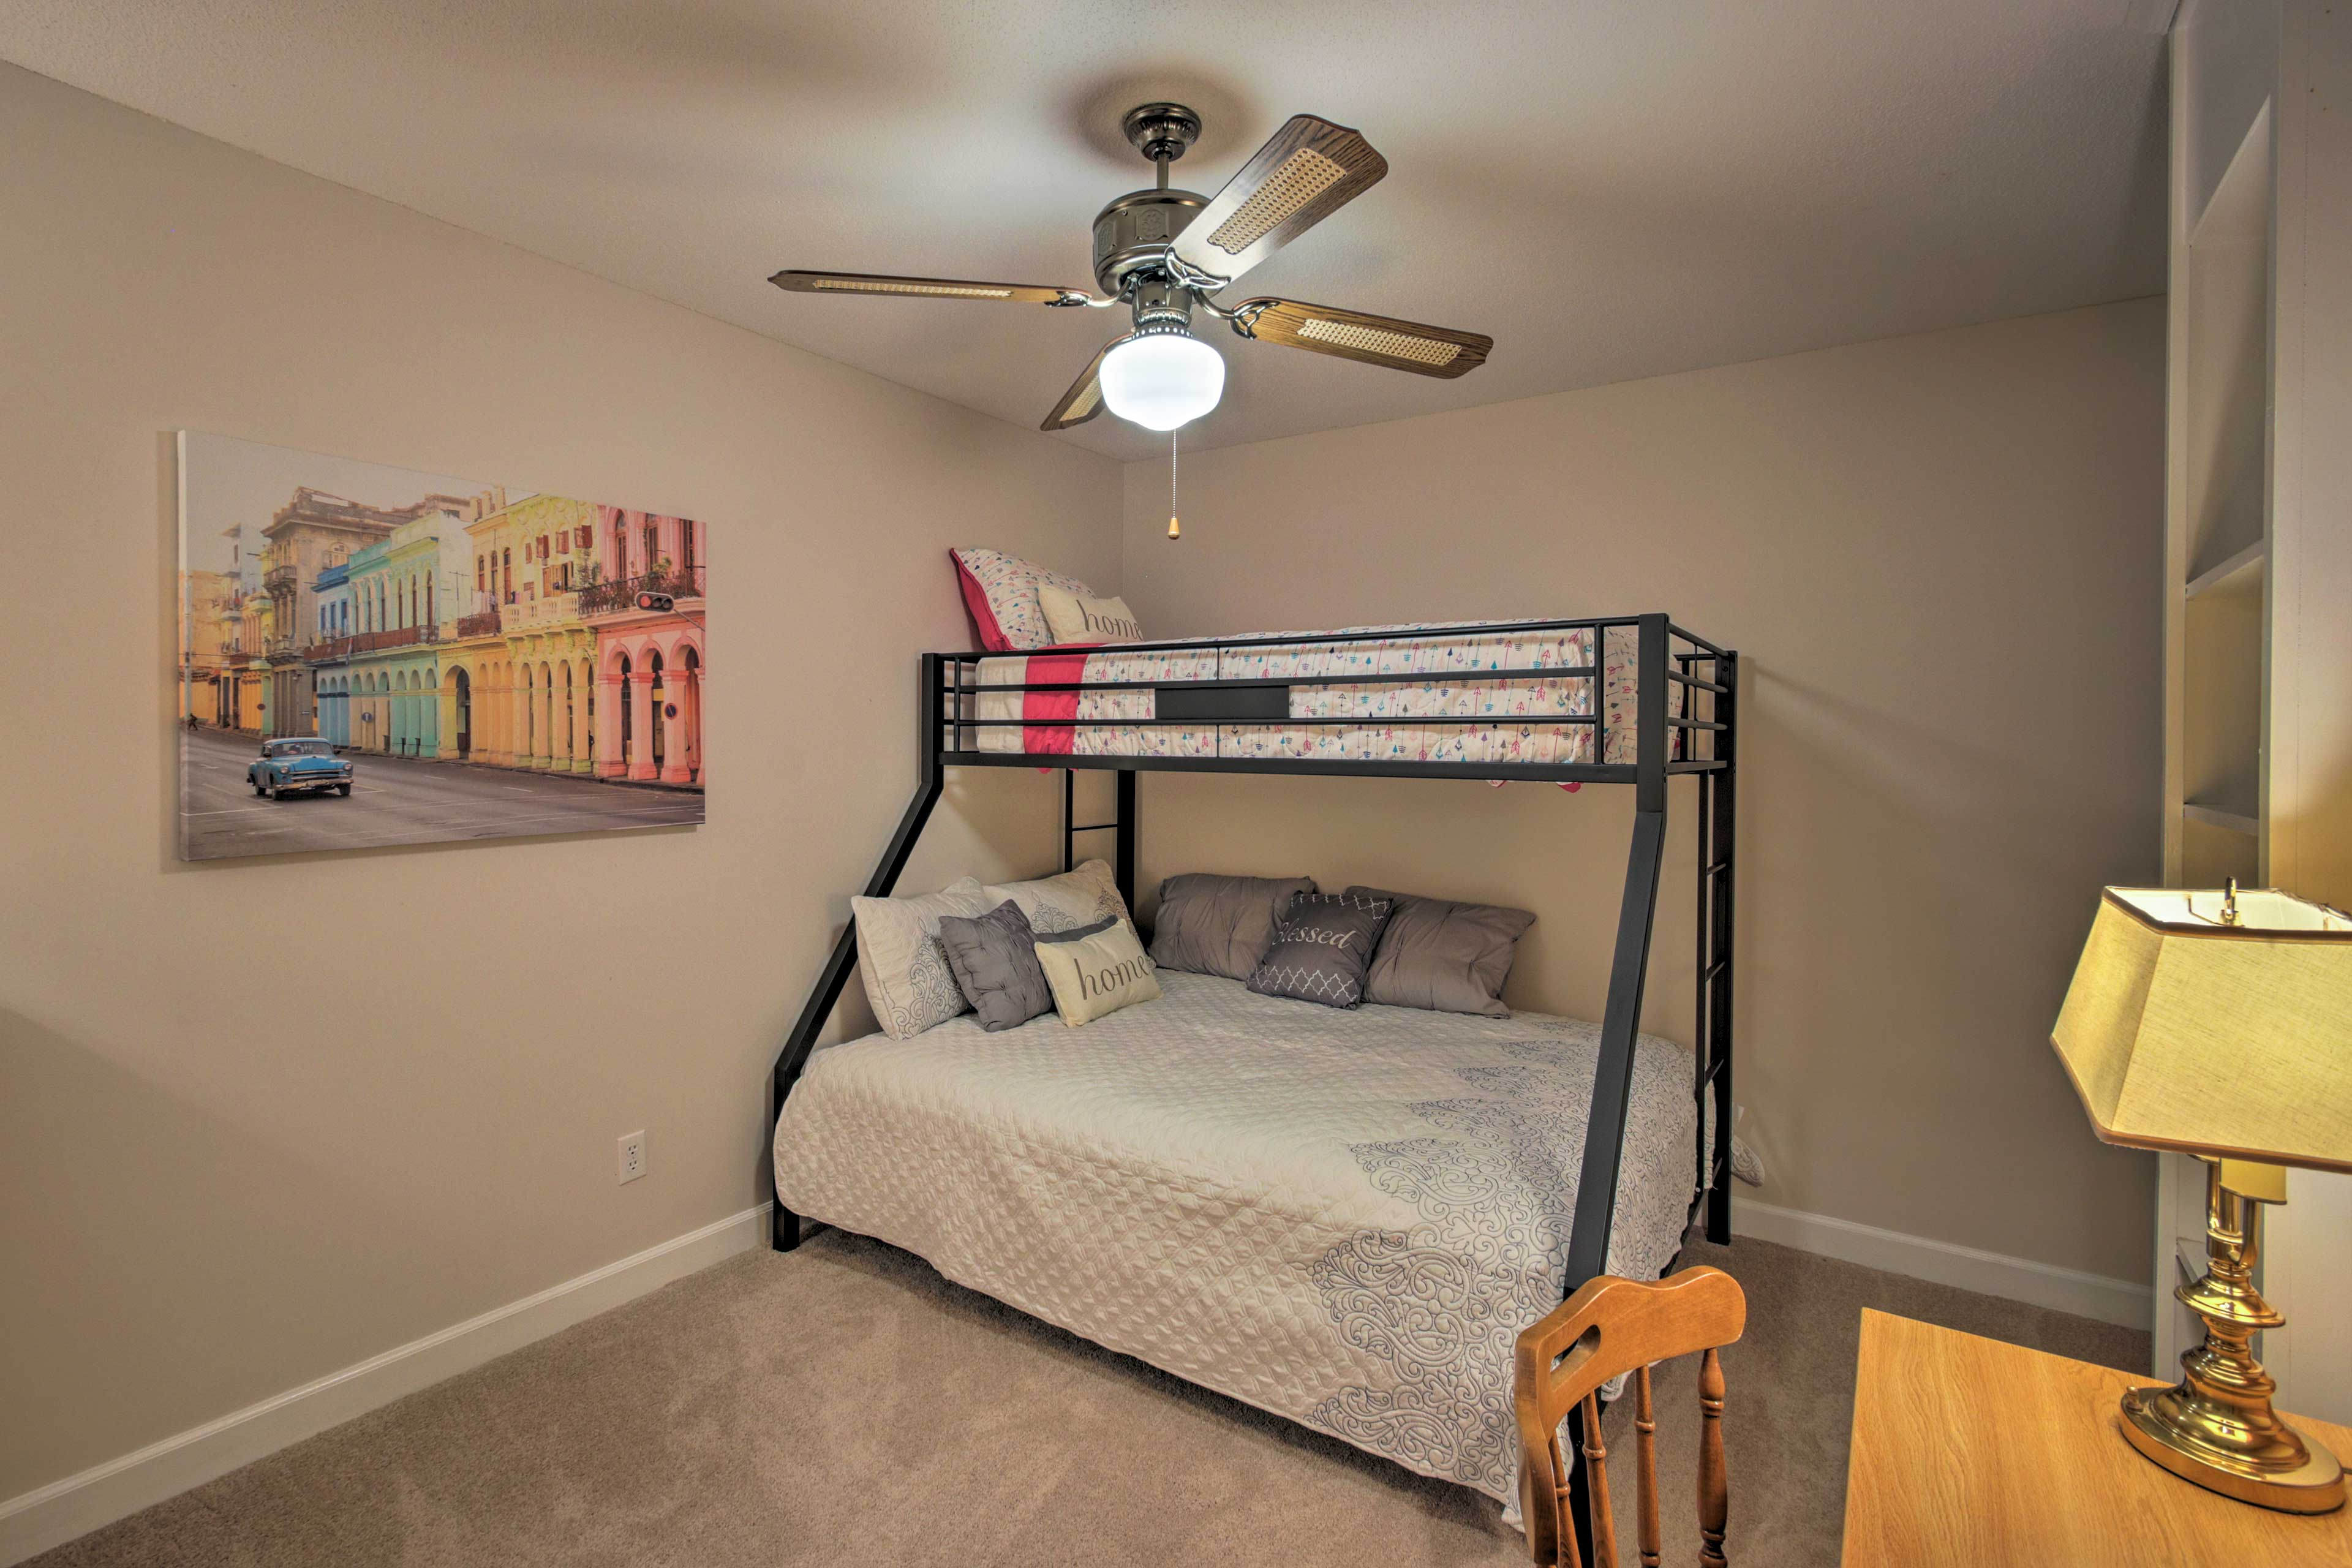 The fifth bedroom is the perfect sleeping quarters for kiddos!